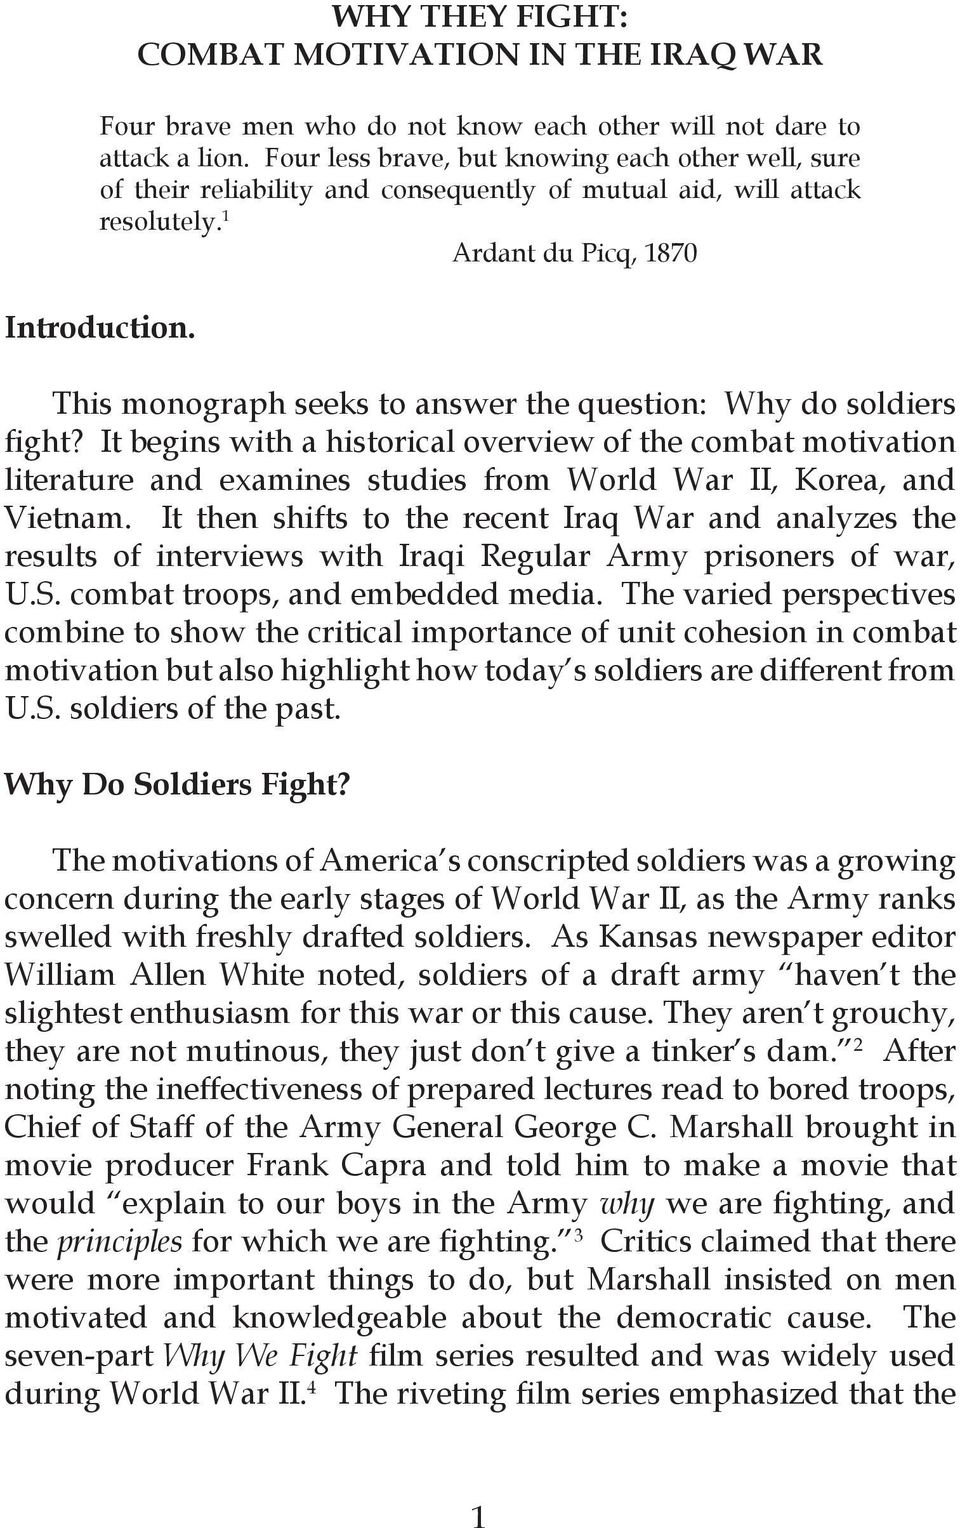 This monograph seeks to answer the question: Why do soldiers fight? It begins with a historical overview of the combat motivation literature and examines studies from World War II, Korea, and Vietnam.